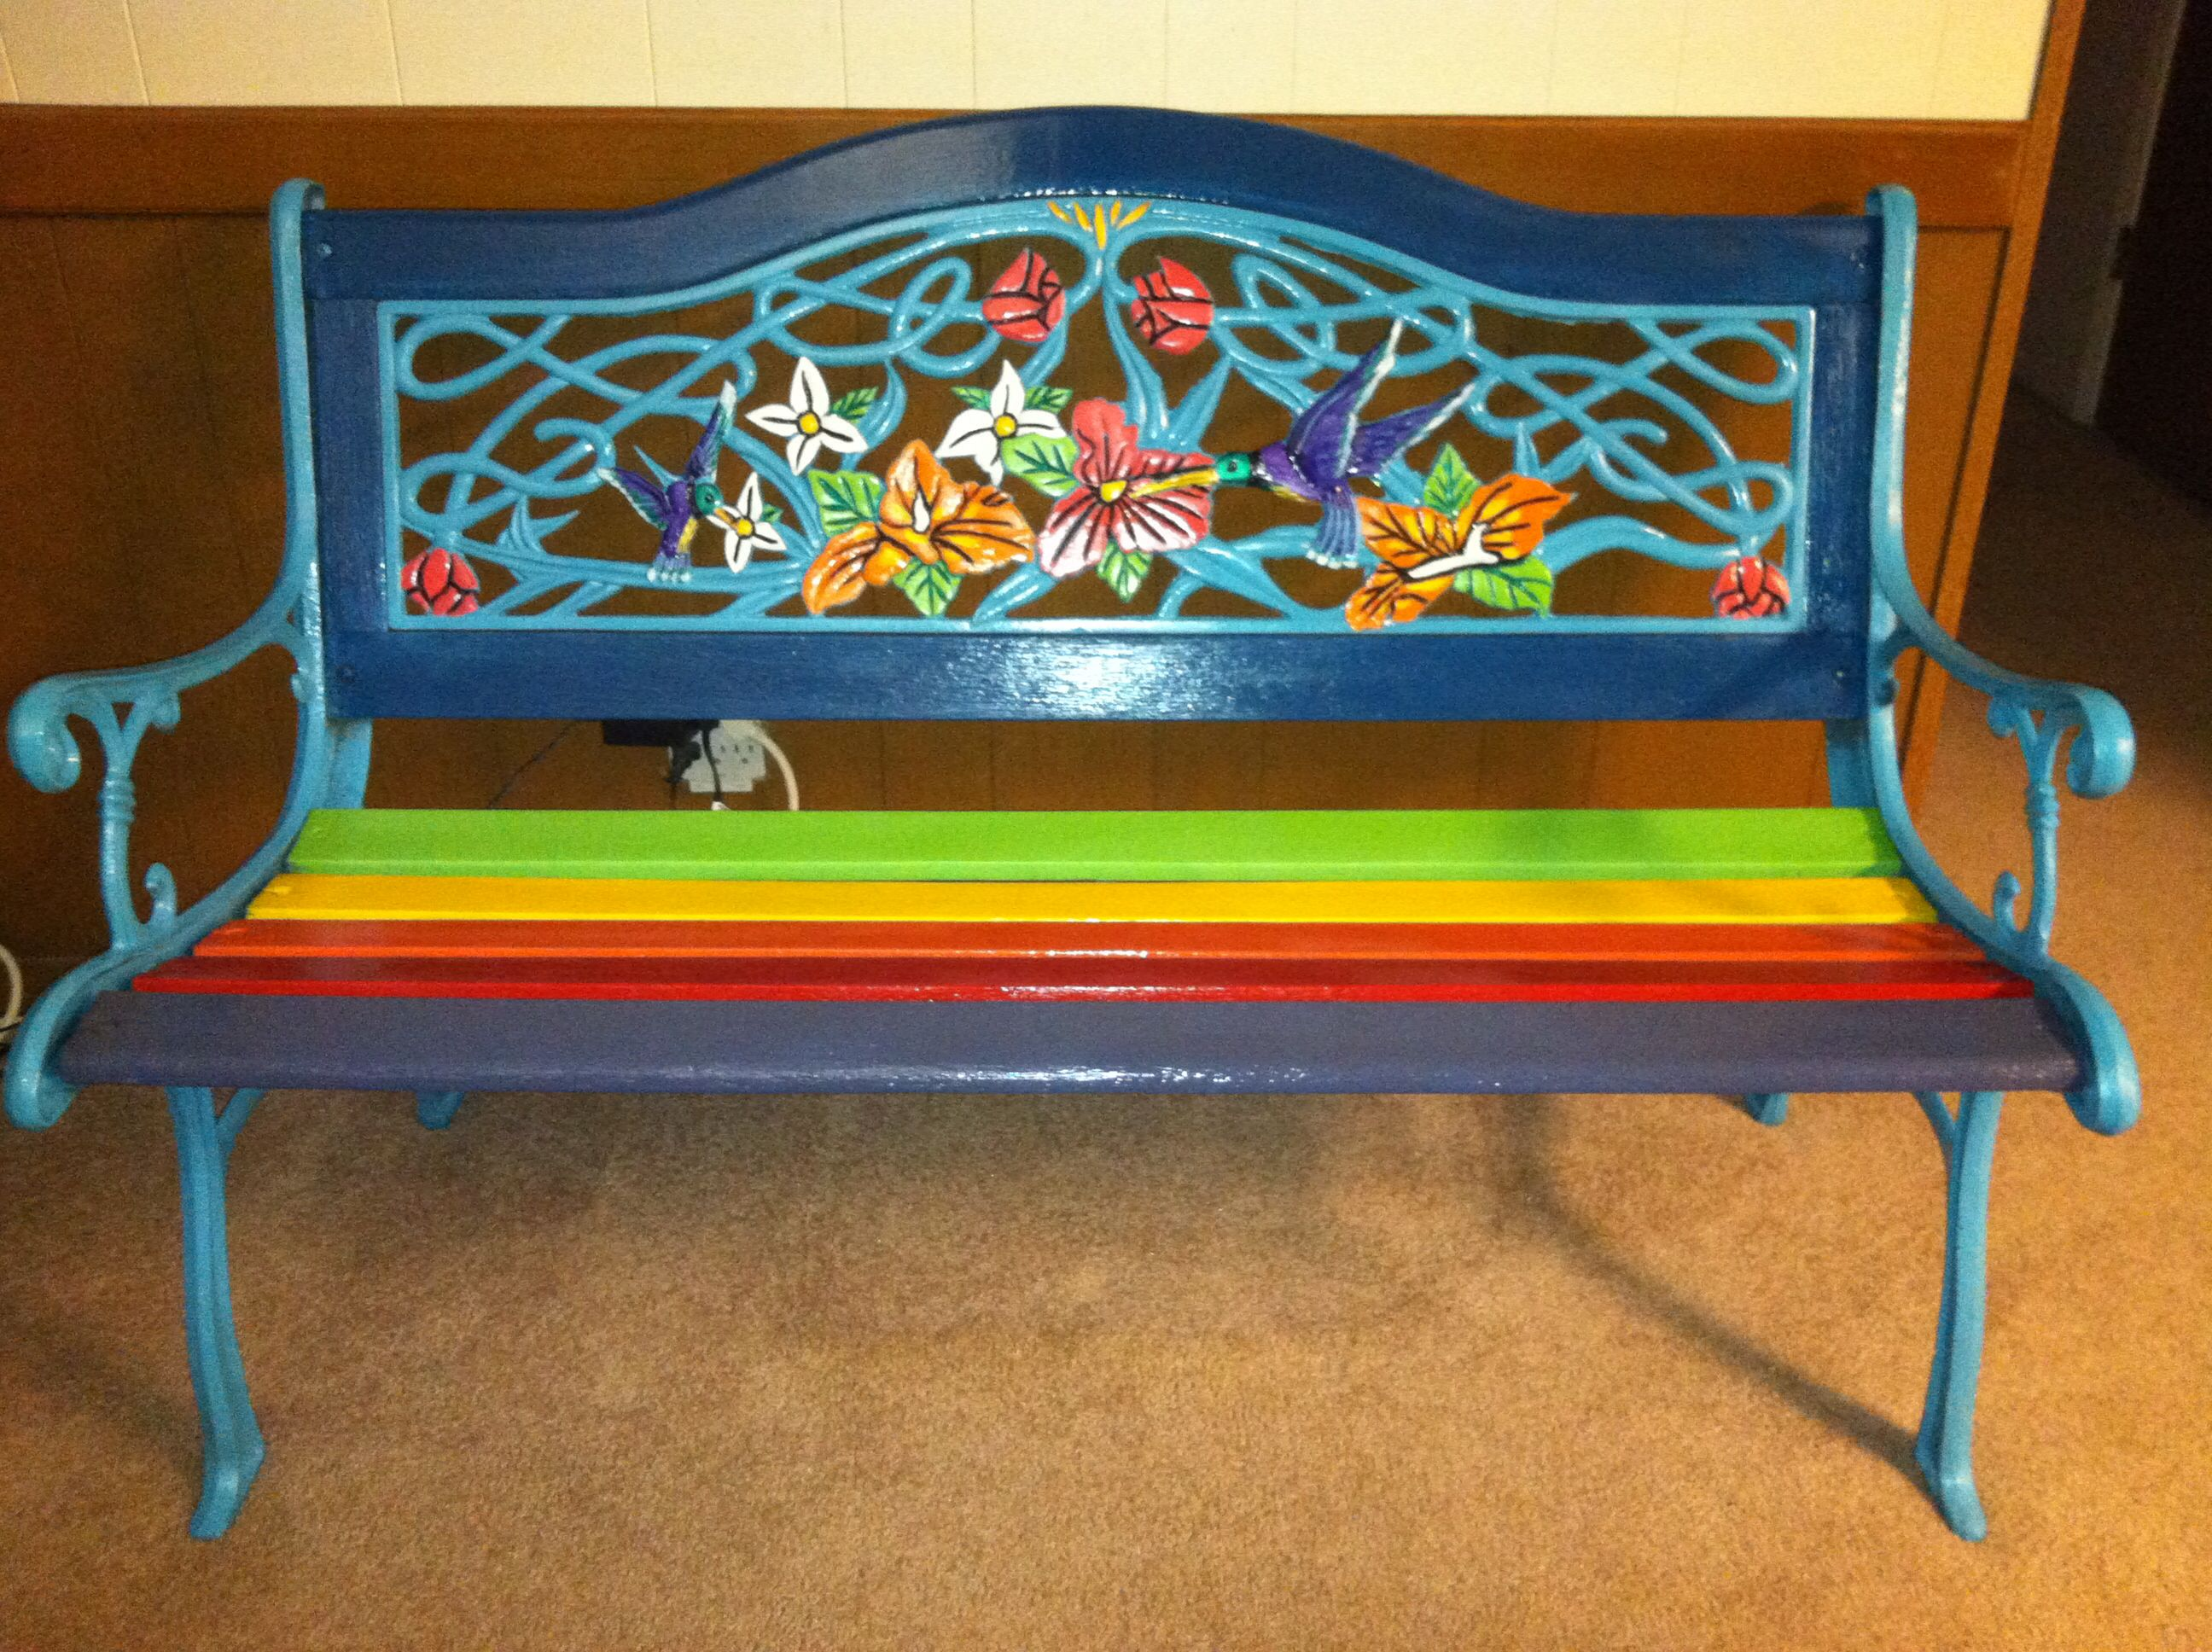 Like The Color Of This Garden Bench What Color Do You Think It Is